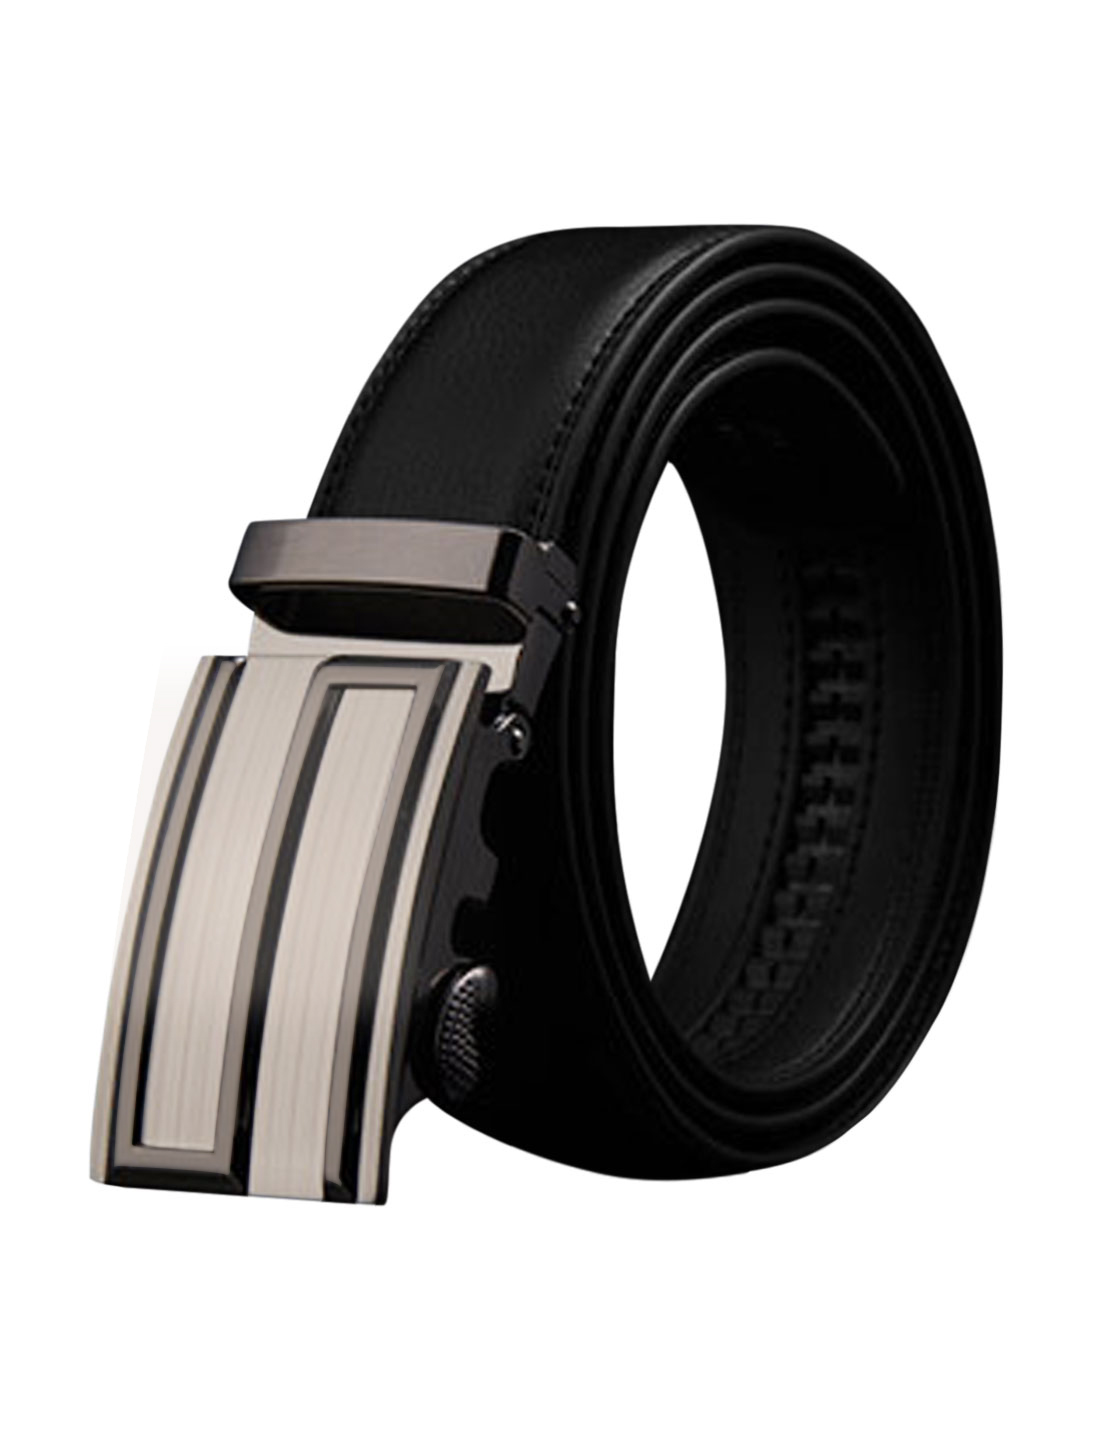 Man Automatic Buckle Holeless Stitched PU Ratchet Belt Black 115CM